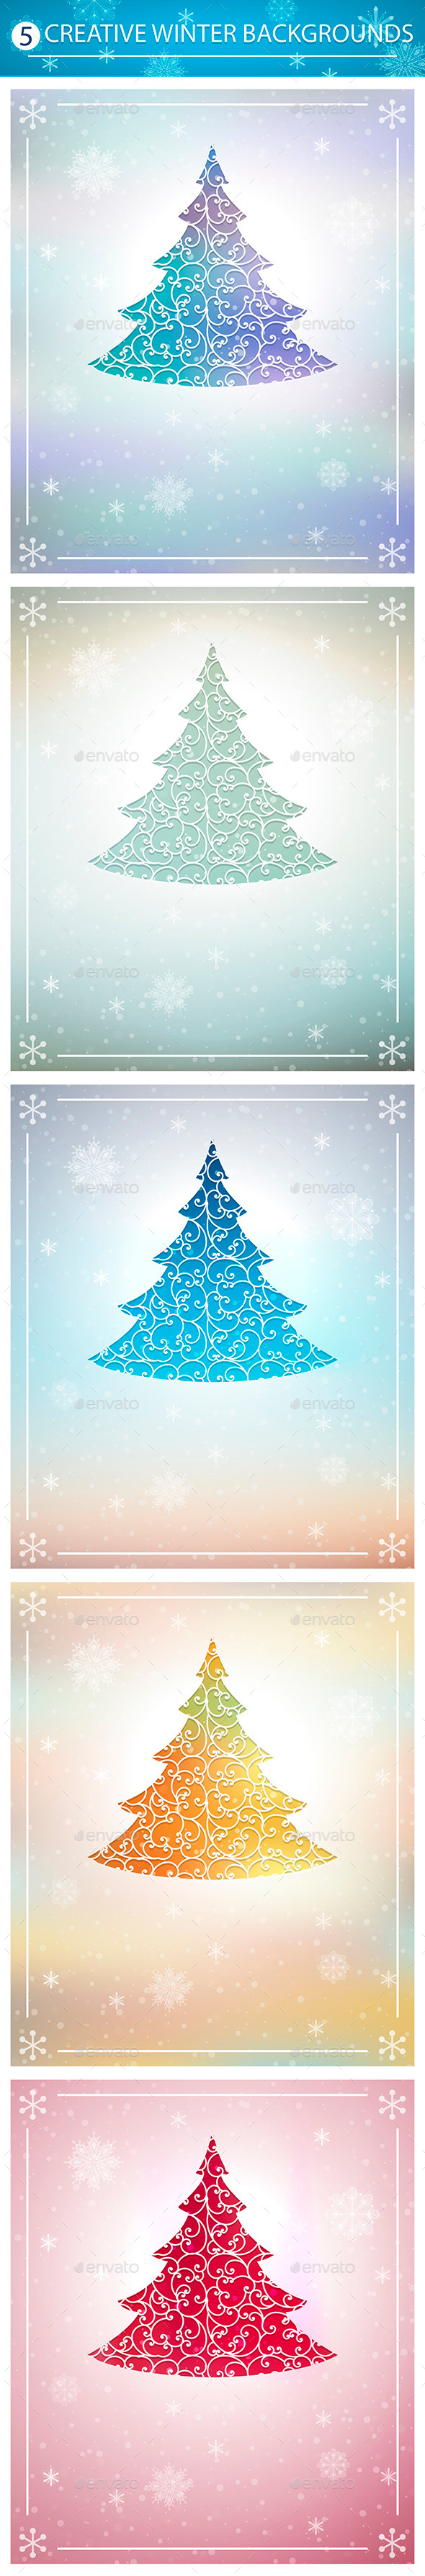 GraphicRiver Winter Backgrounds Set 9319238